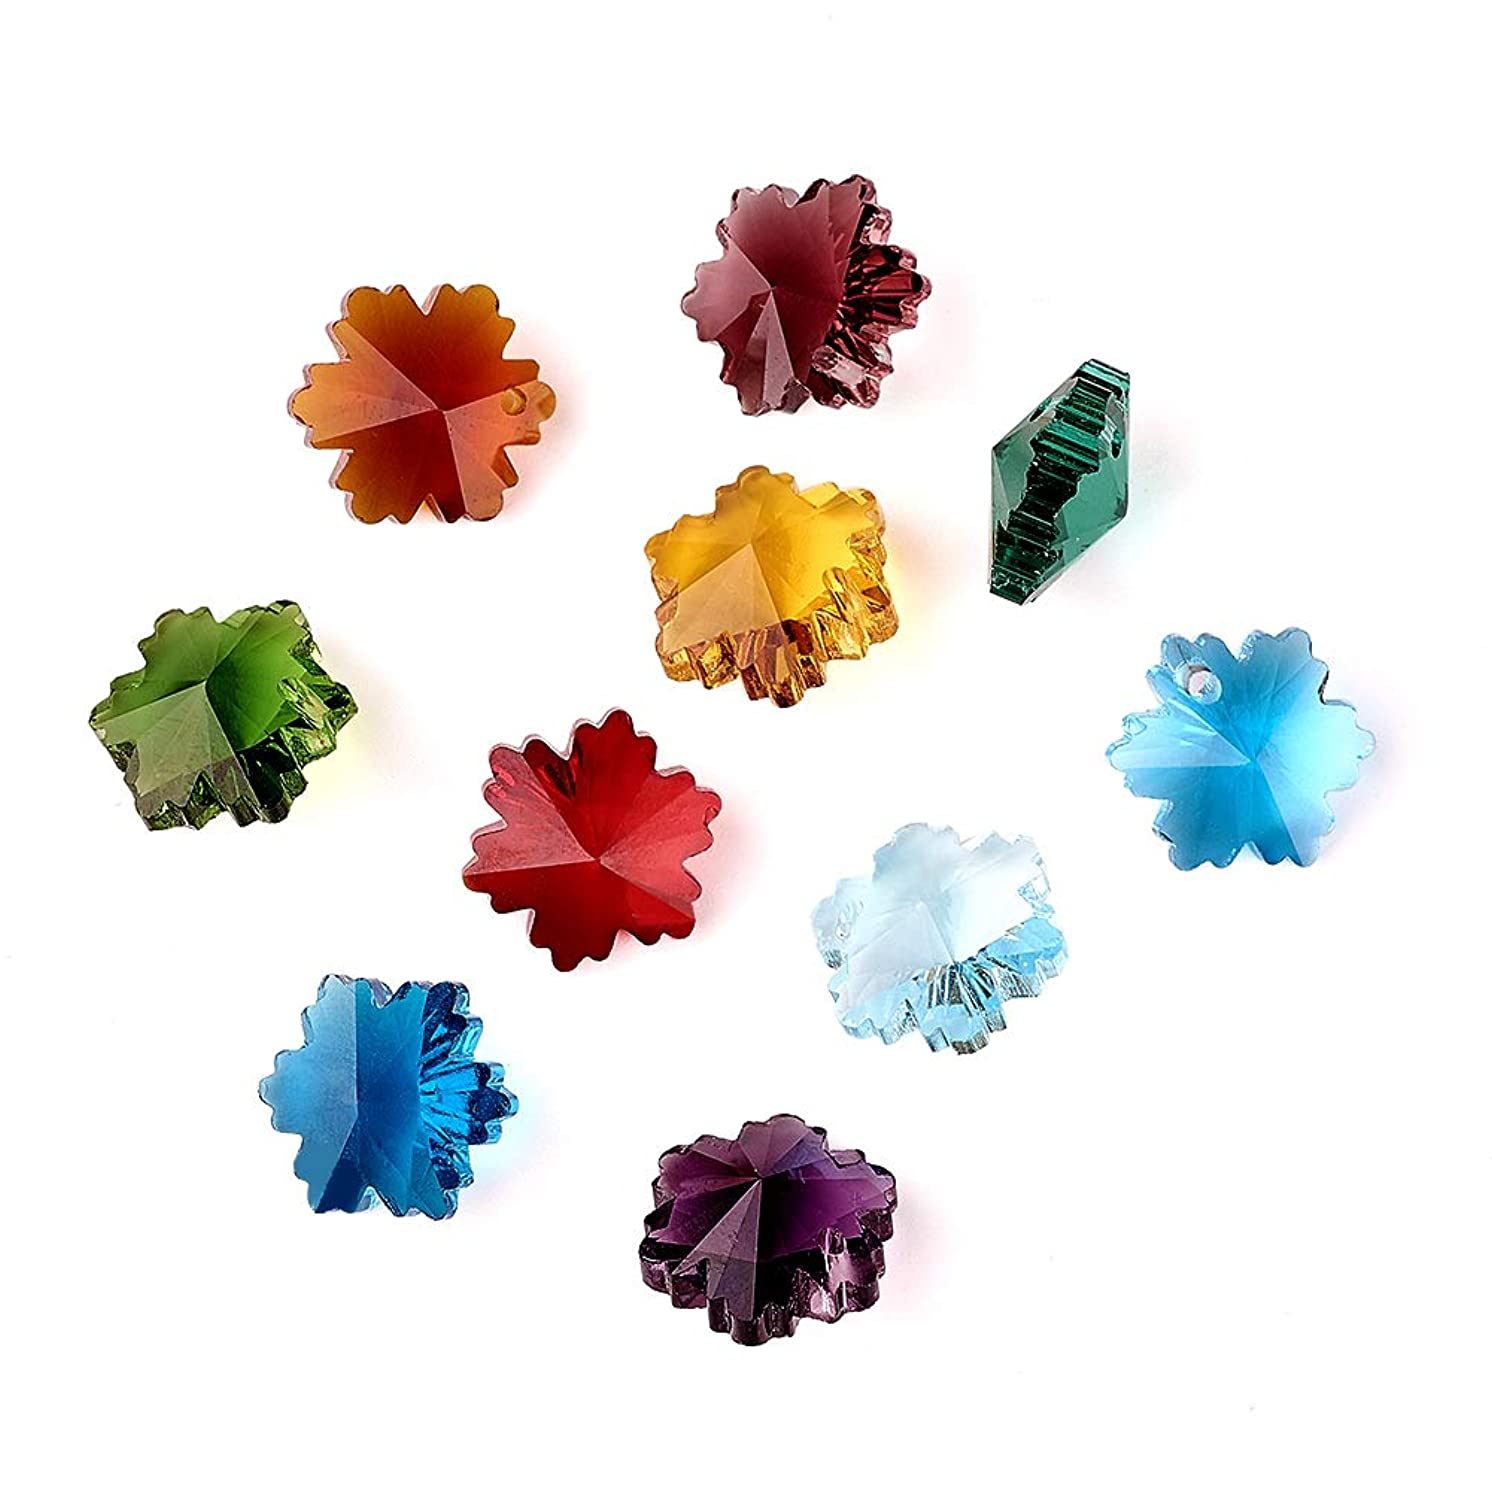 Craftdady 100PCS Mixed Color Handmade Christmas Snowflake Faceted Glass Pendants Charms Loose Bead for Bracelets Necklace Jewelry Making Findings